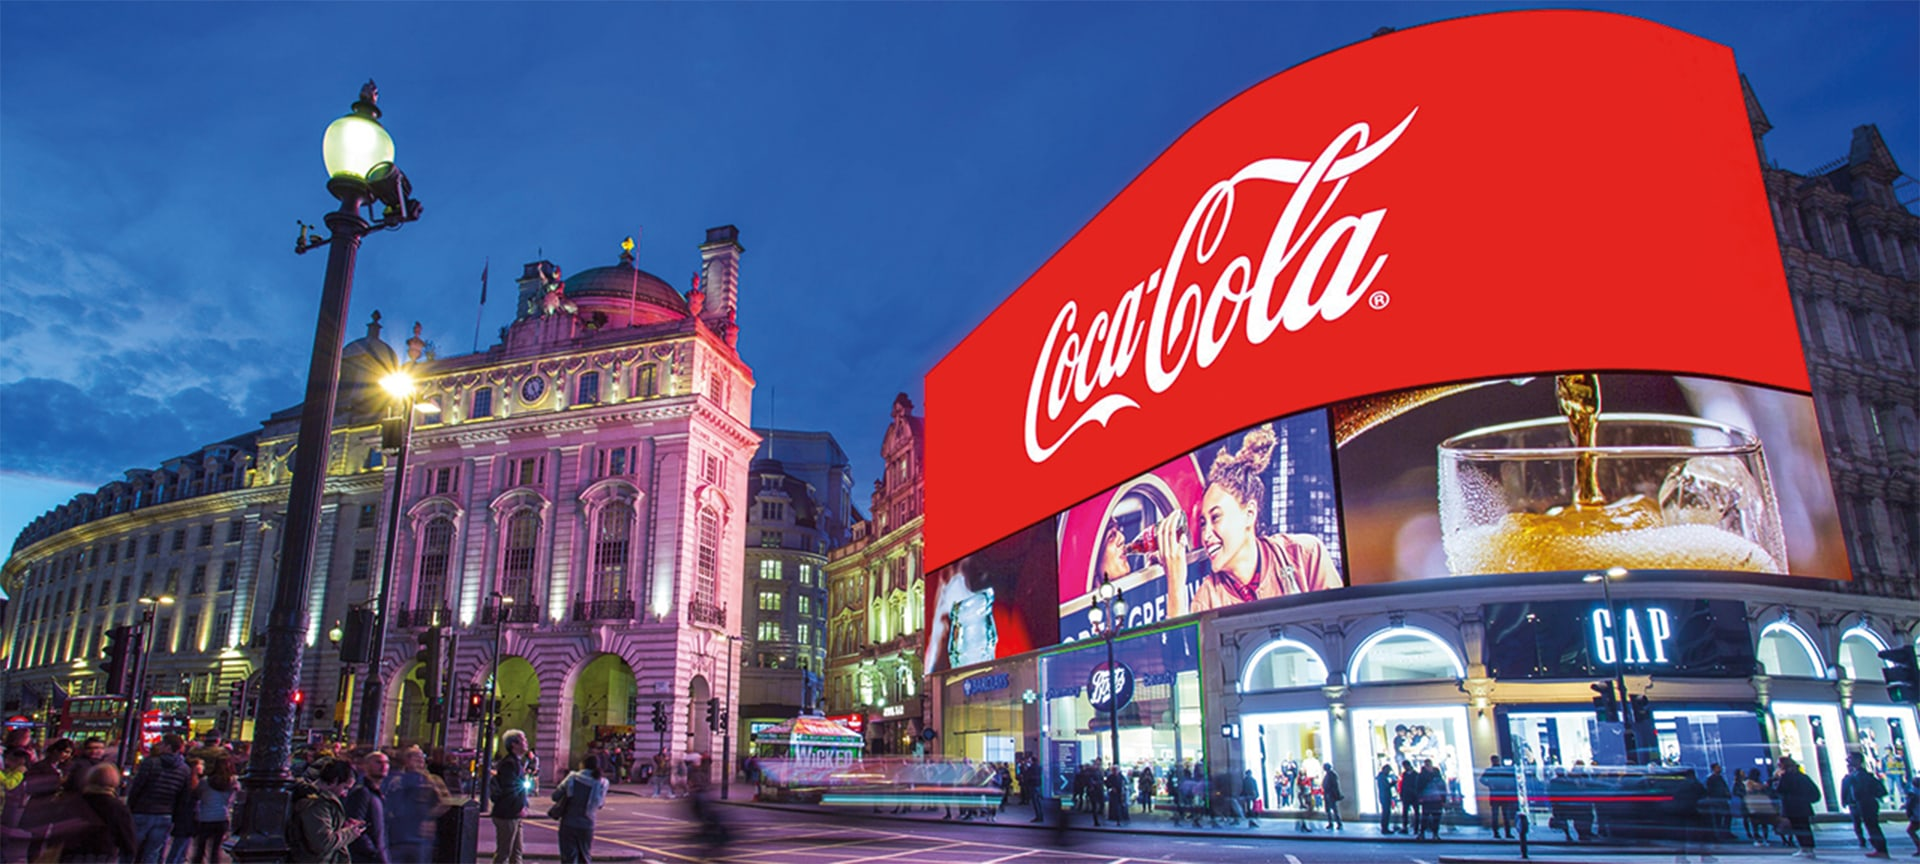 One of the most familiar brands using the Piccadilly Lights to advertise is Coca-Cola, which took its first sign at Piccadilly Circus in 1955. More recently, the drinks giant has used the remade site to tune into the zeitgeist and respond to topical events.